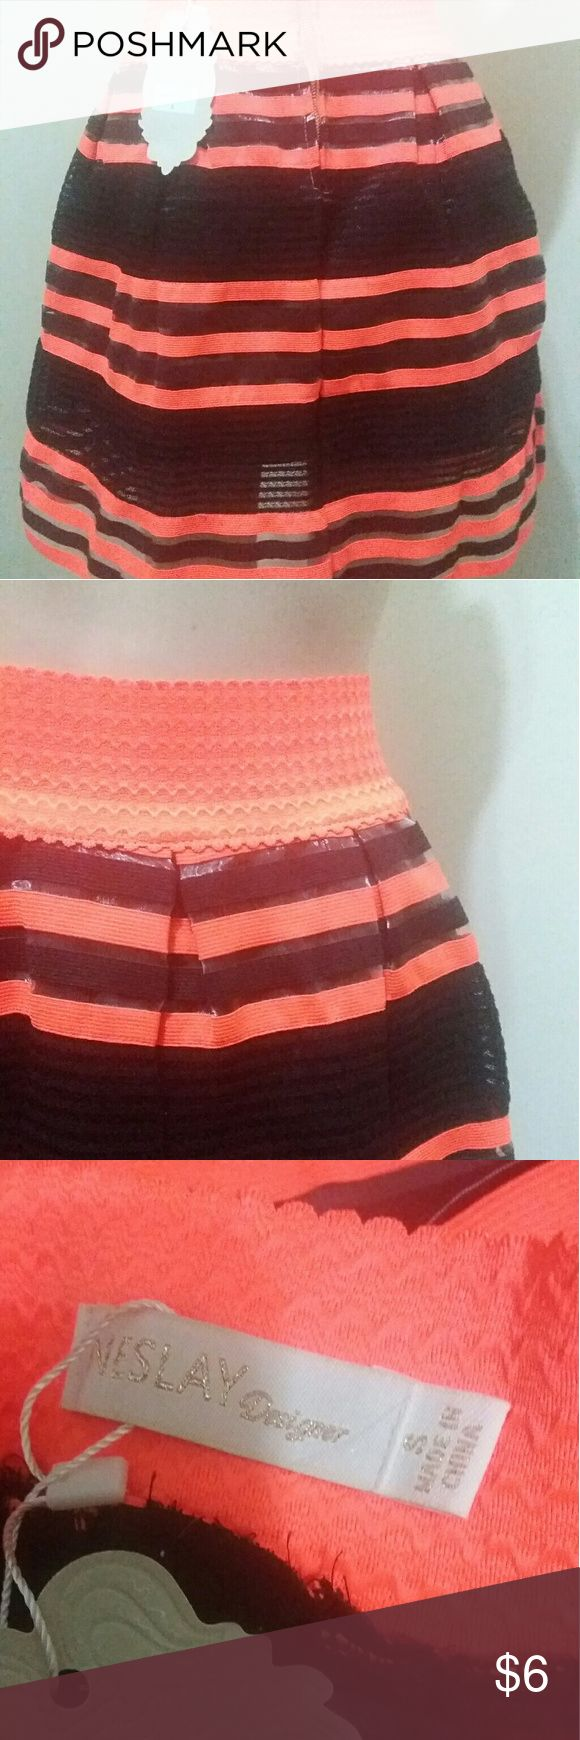 Neon orange stripe skater skirt NWT Size small stripe neon orange and black circle skirt with zipper in the back. New with tags. Brand tag but not price tag. Skirts Circle & Skater